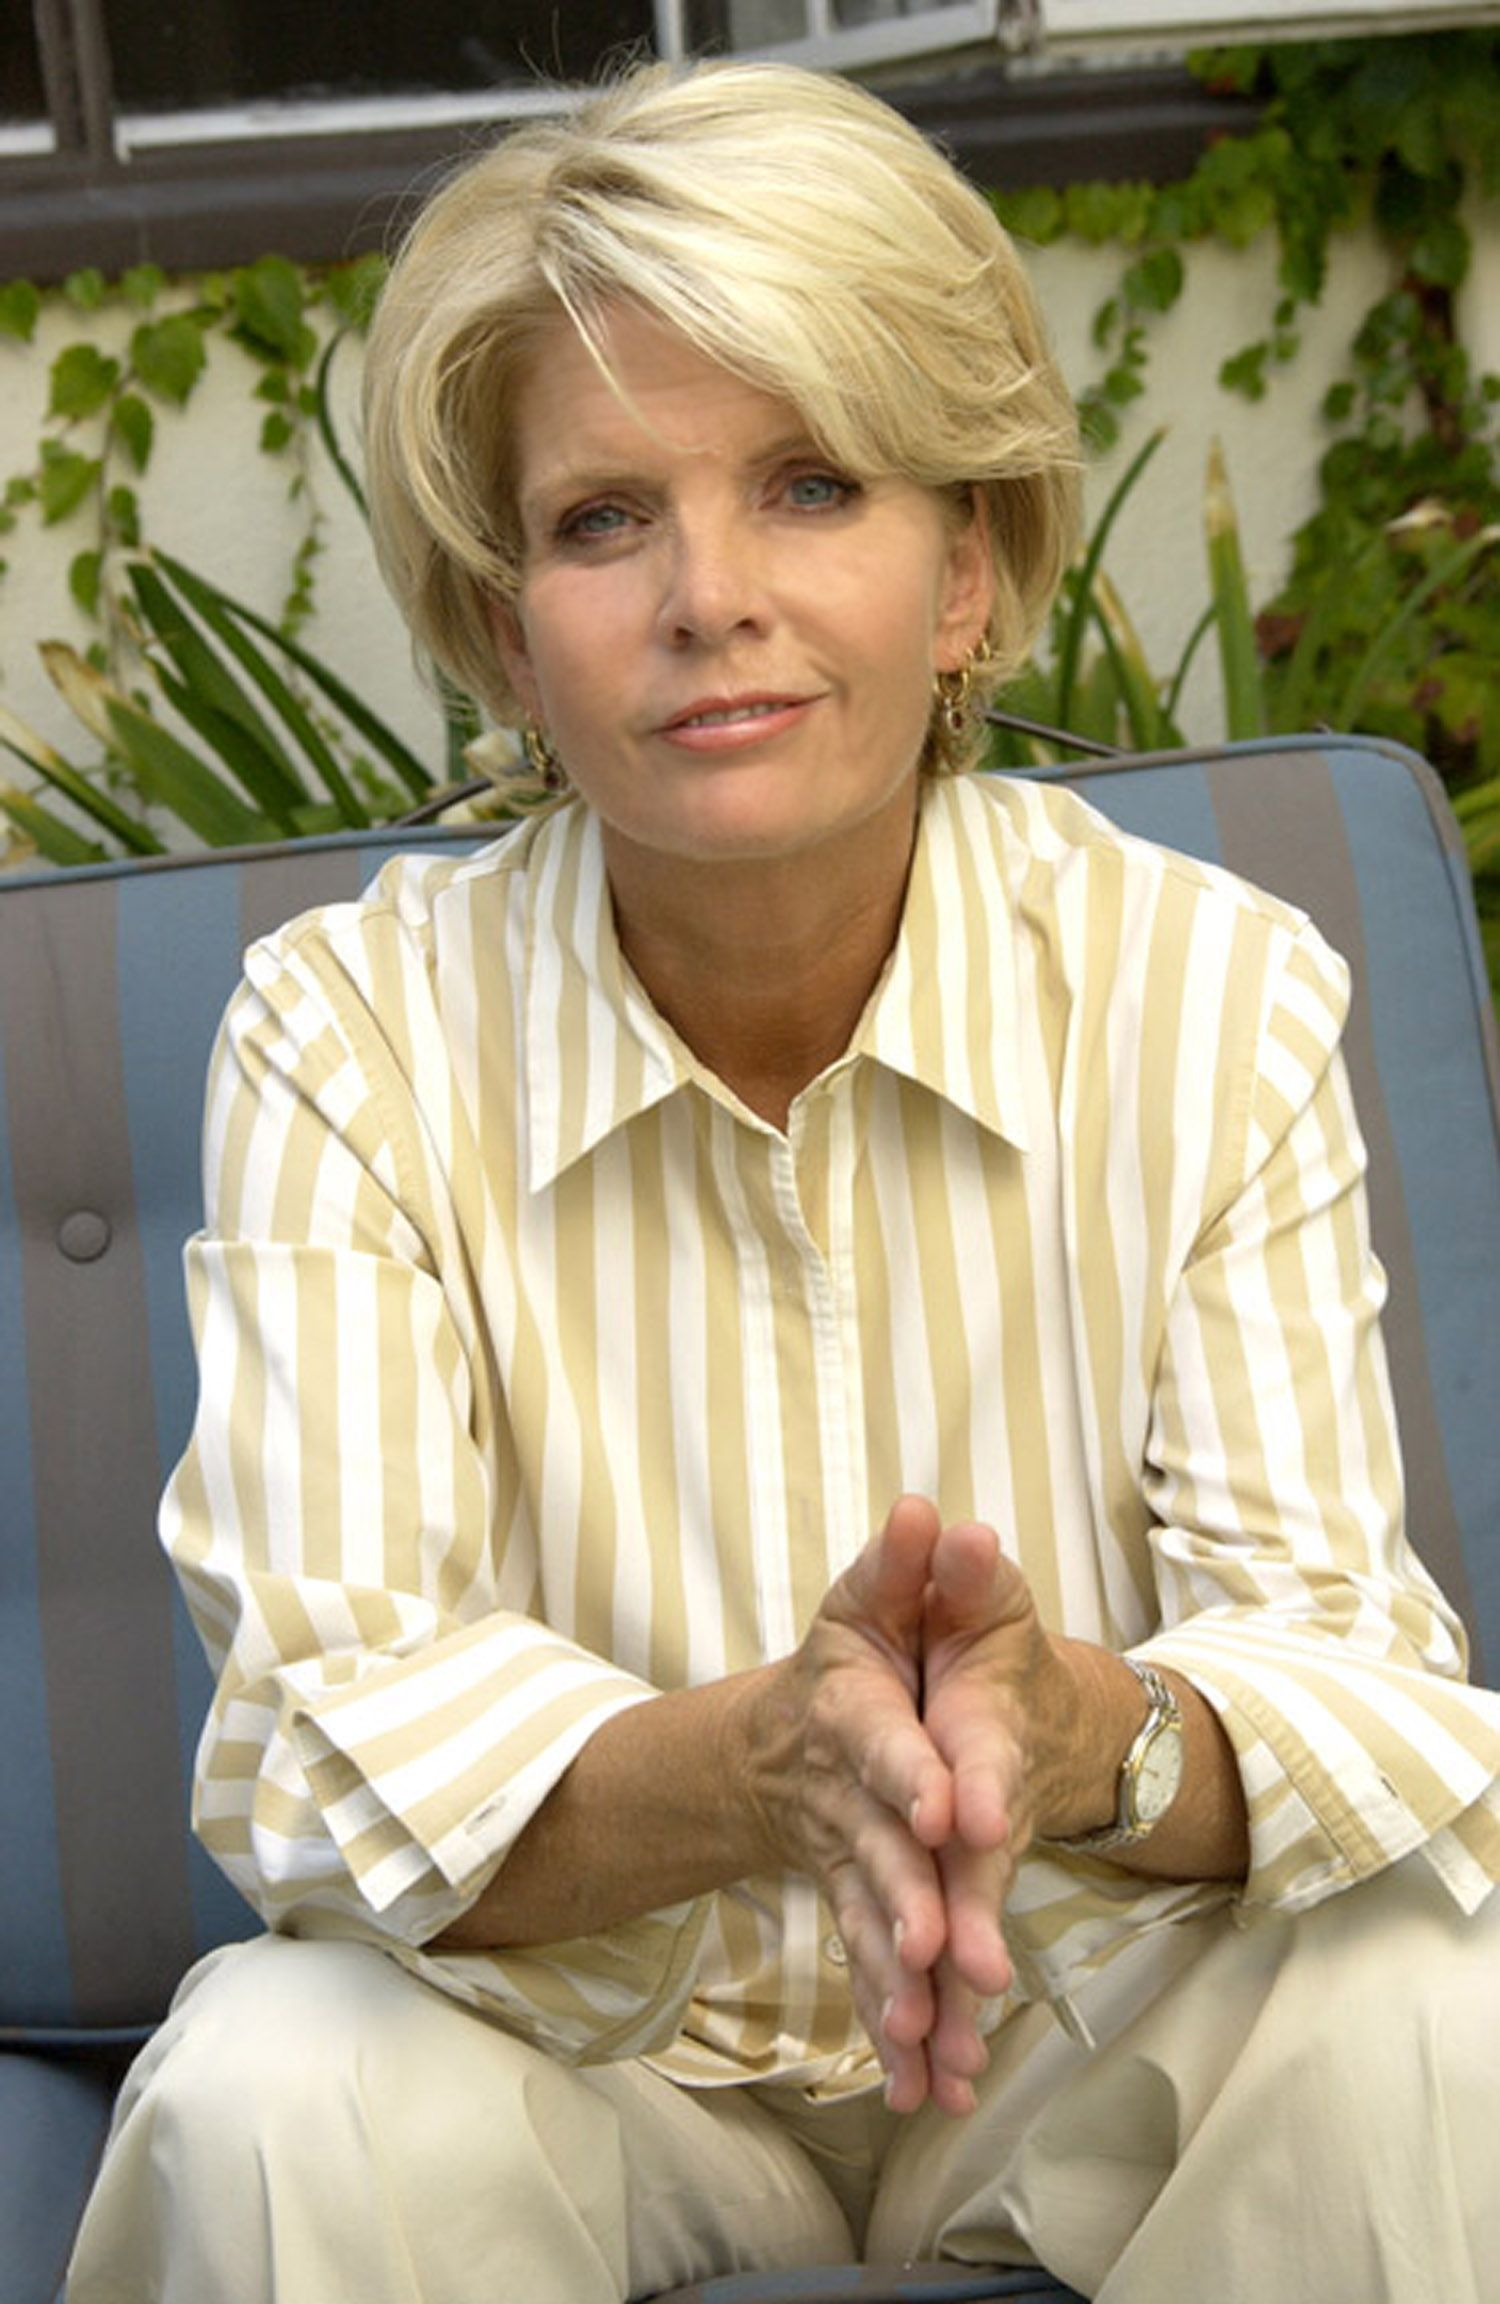 is-meredith-baxter-birney-a-lesbian-nude-cock-slip